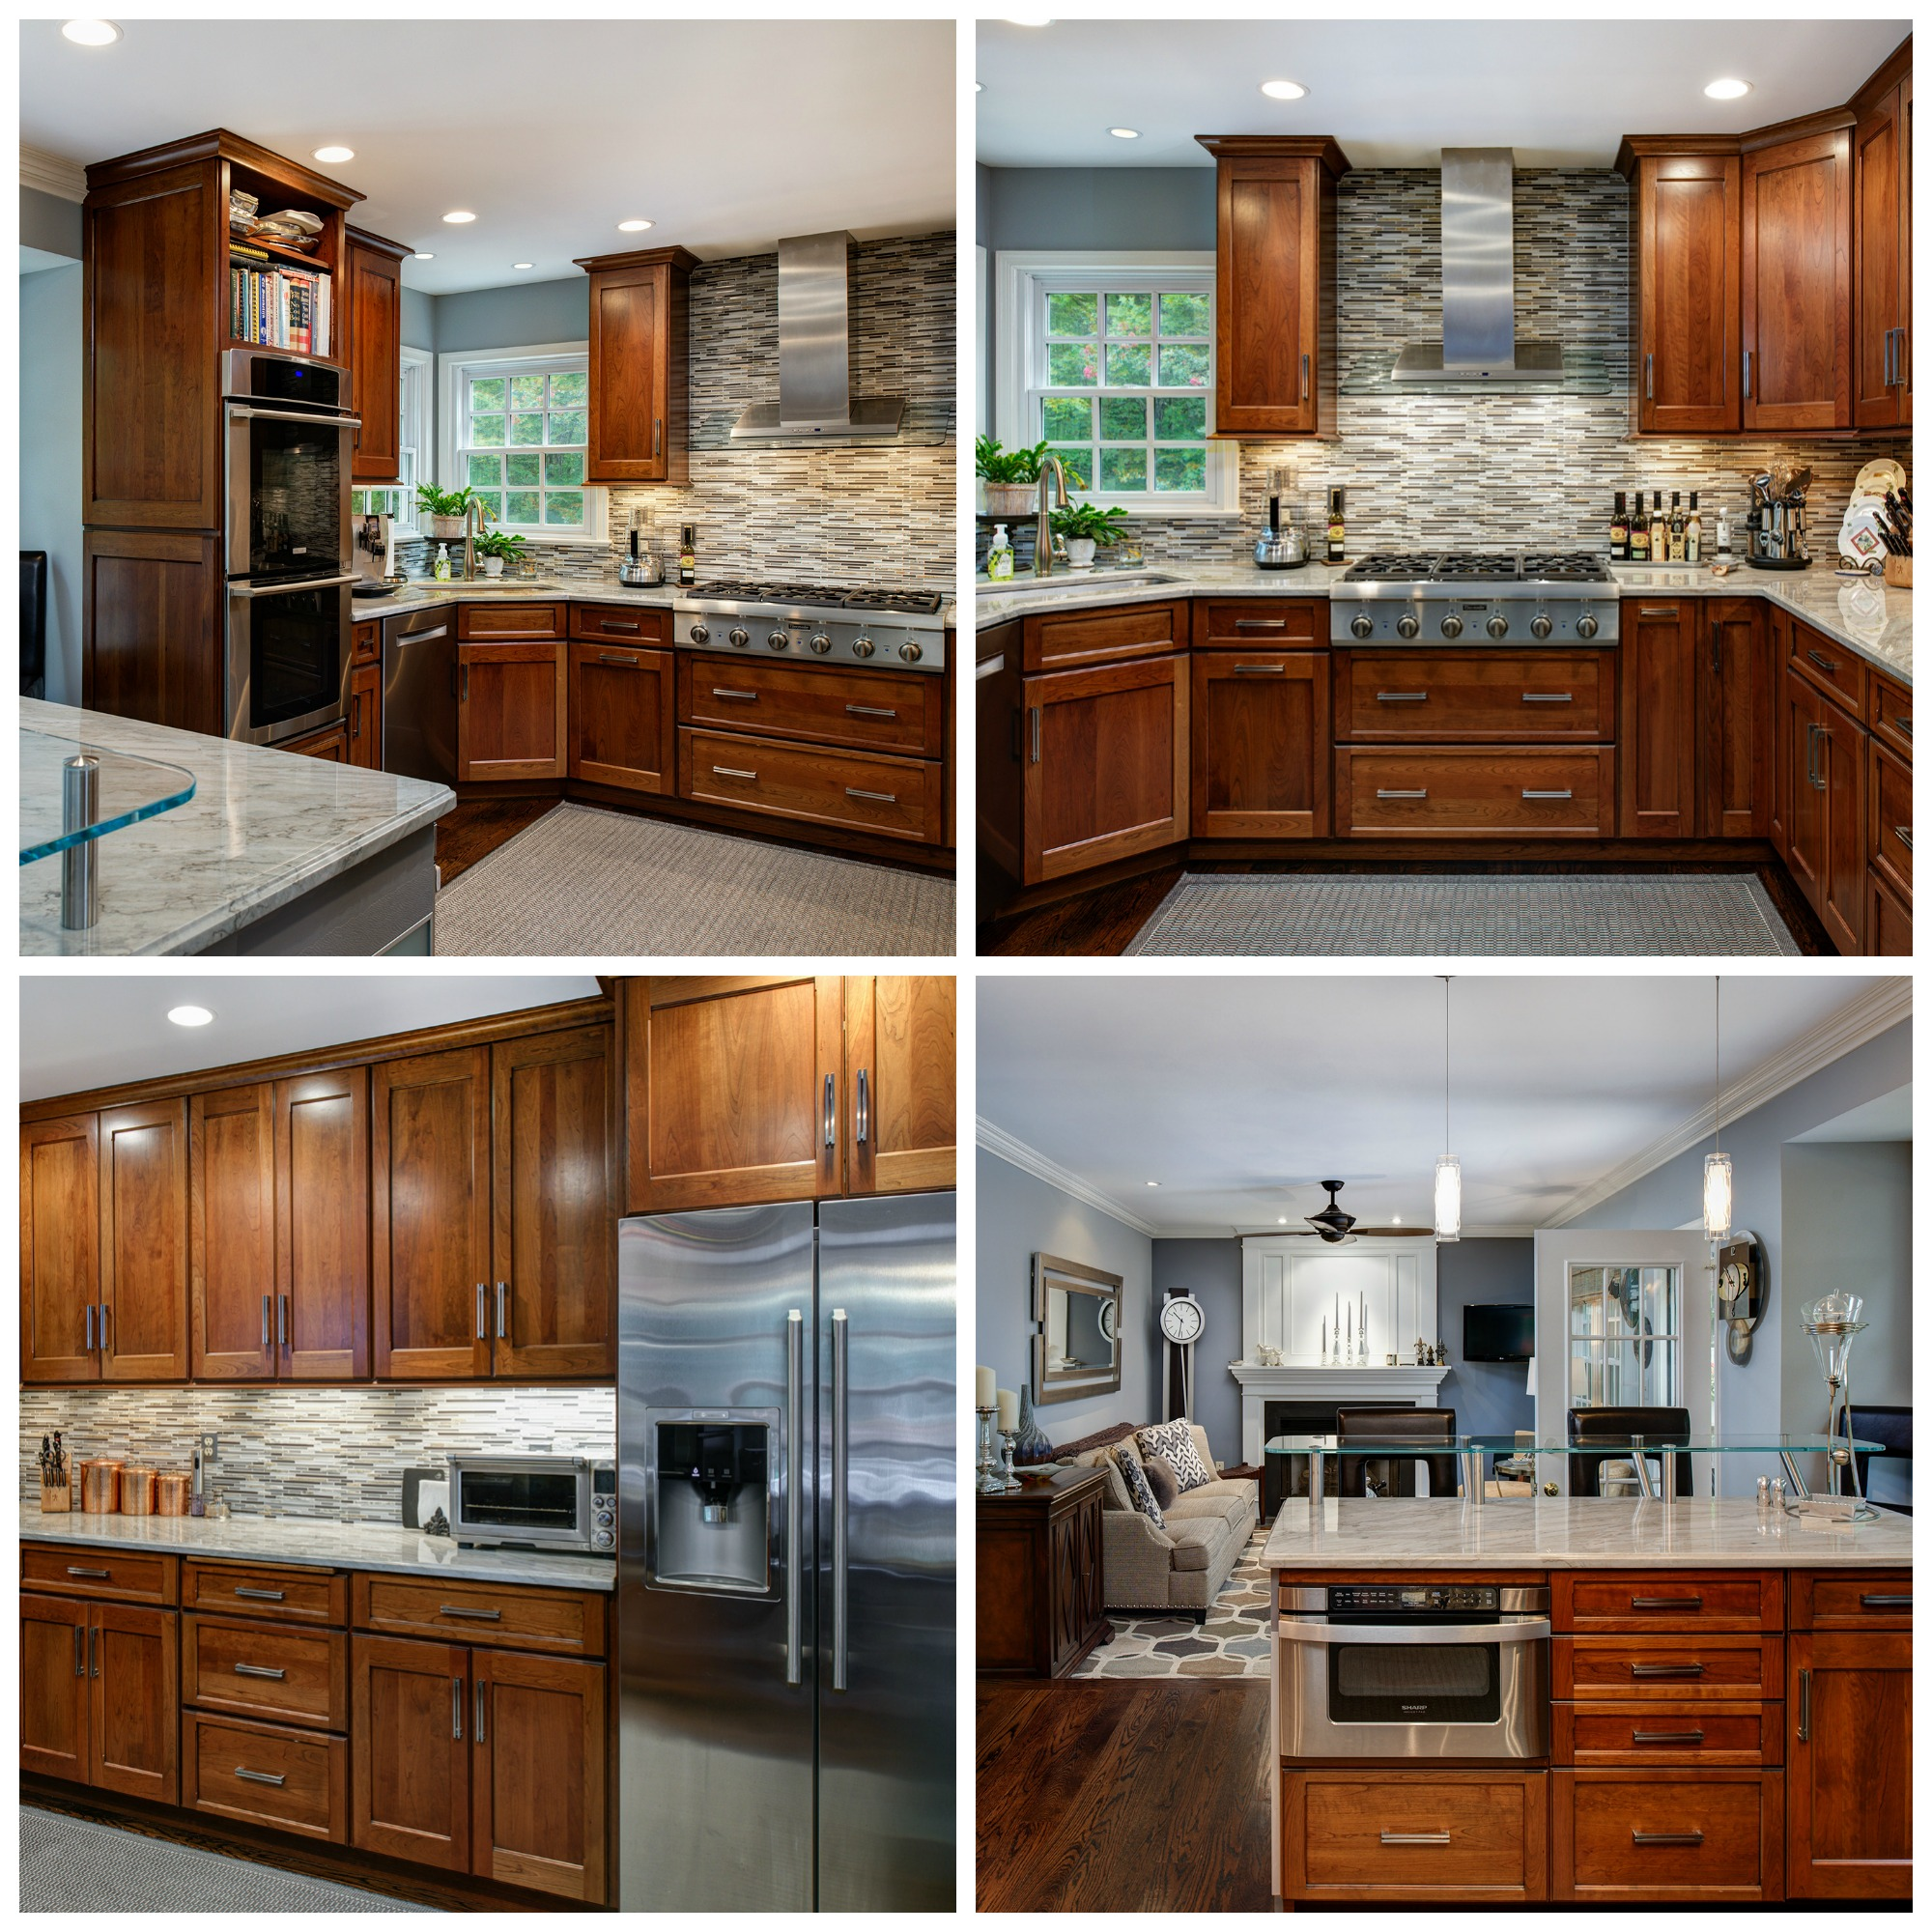 1248 Lamplighter Way, Reston- Kitchen